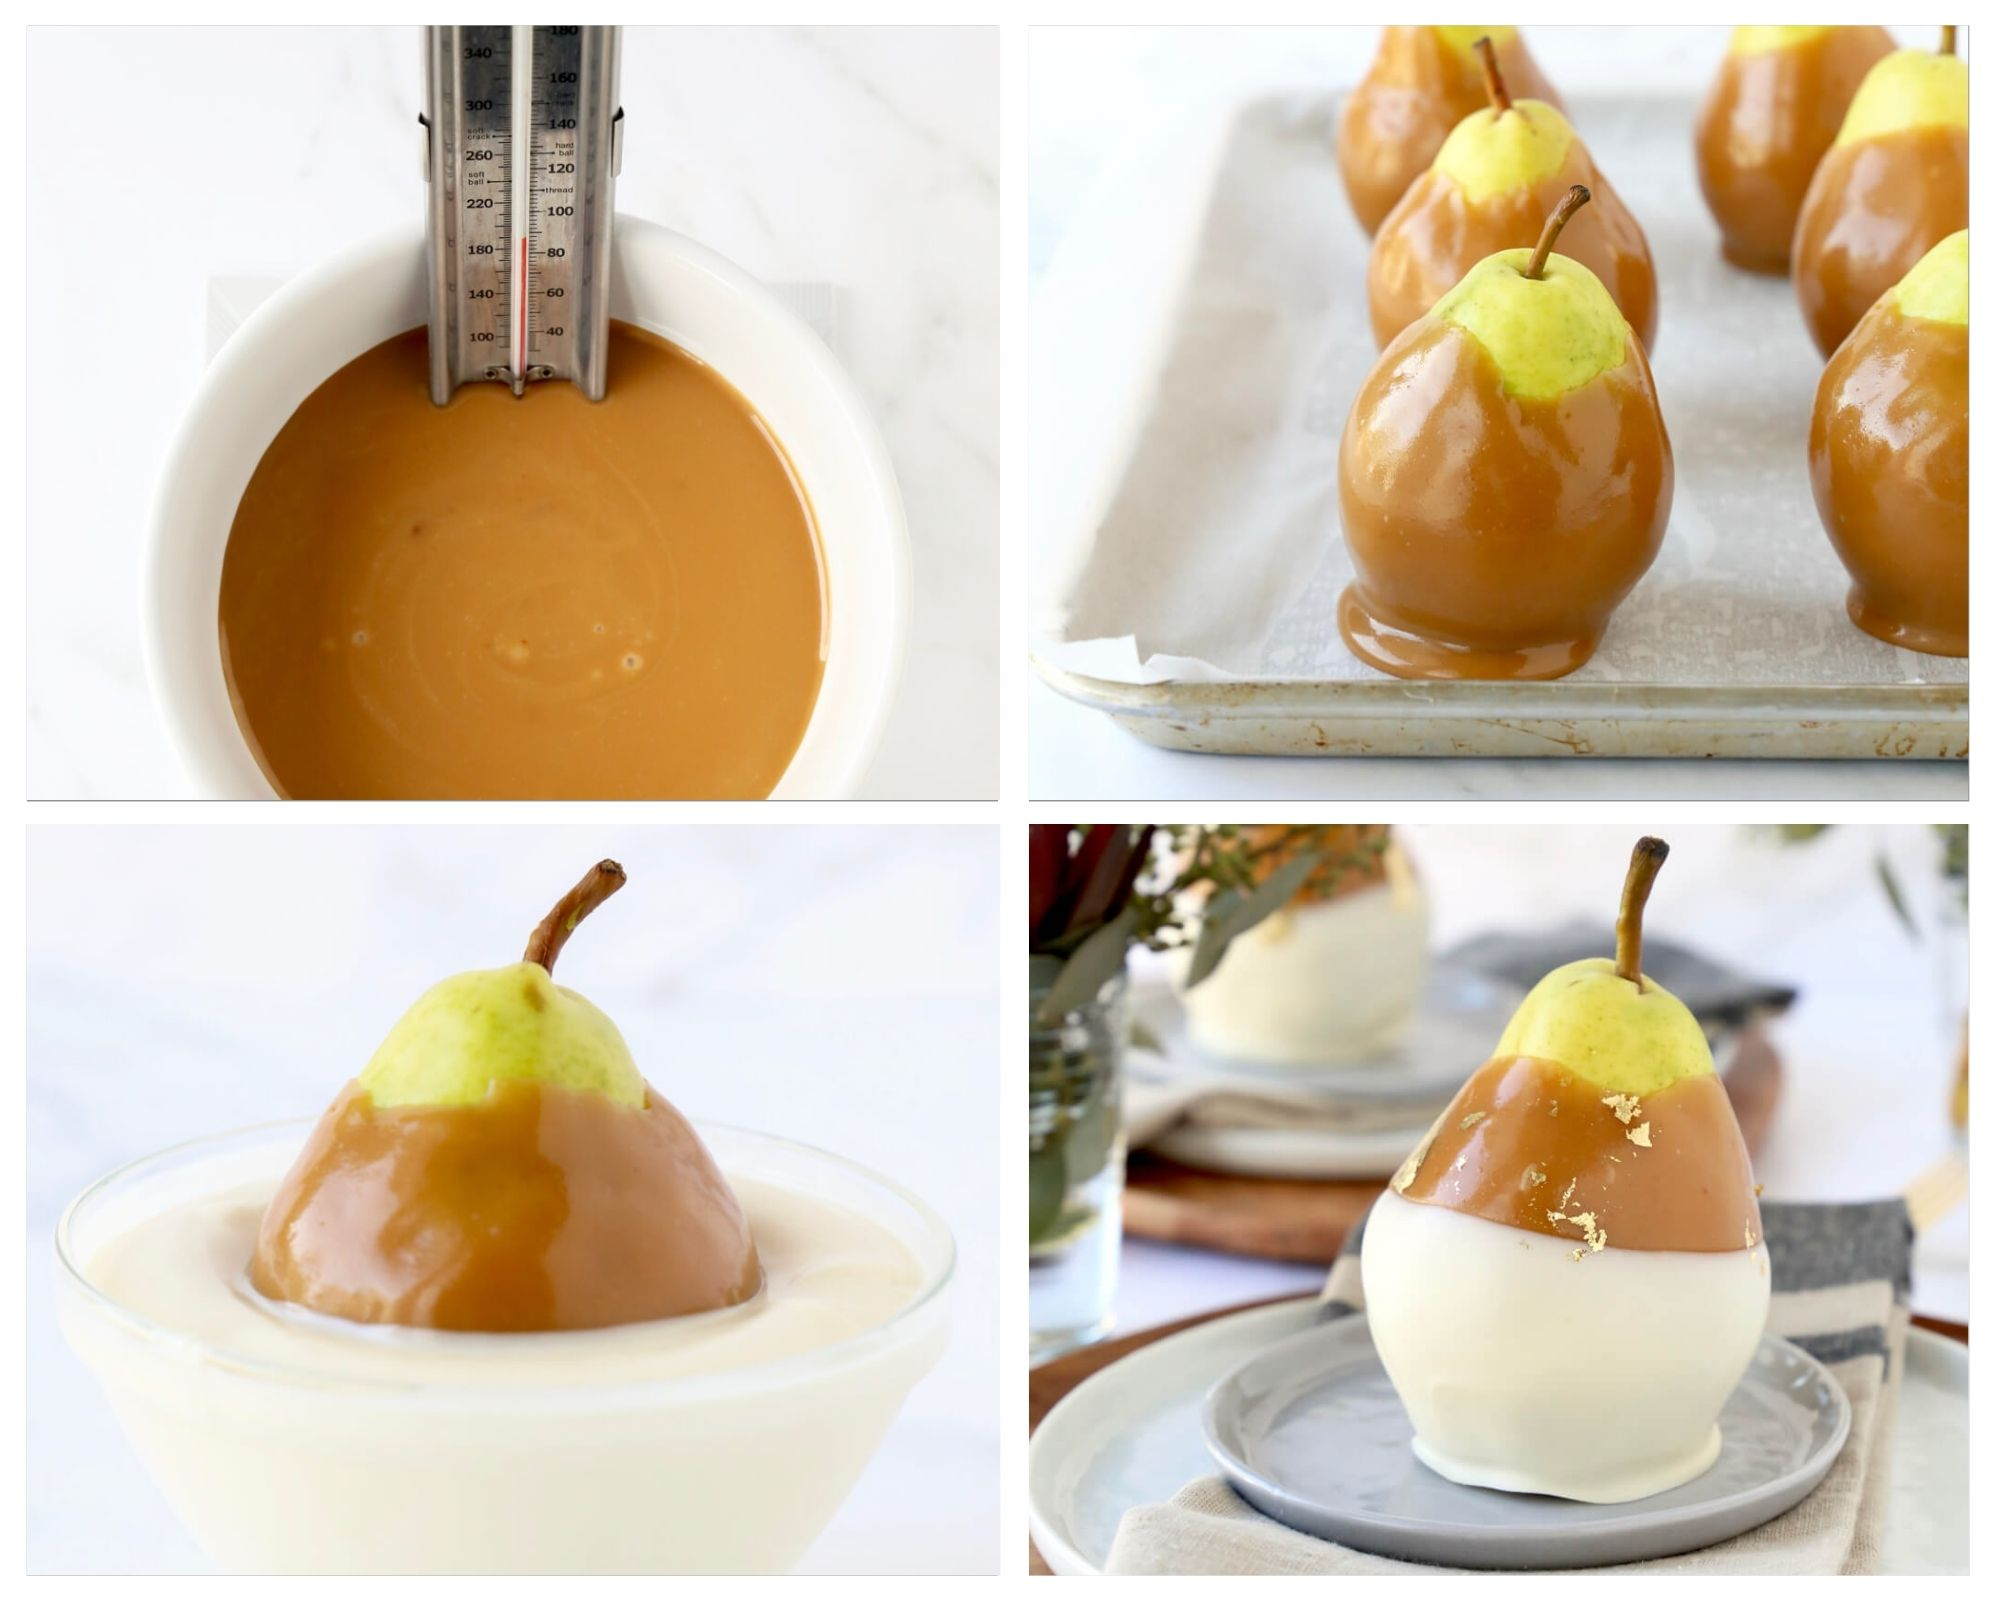 the process of dipping pears in caramel with the caramel sauce, pears dipped in caramel, pears dipped in white chocolate and pears on the table with pacesetting